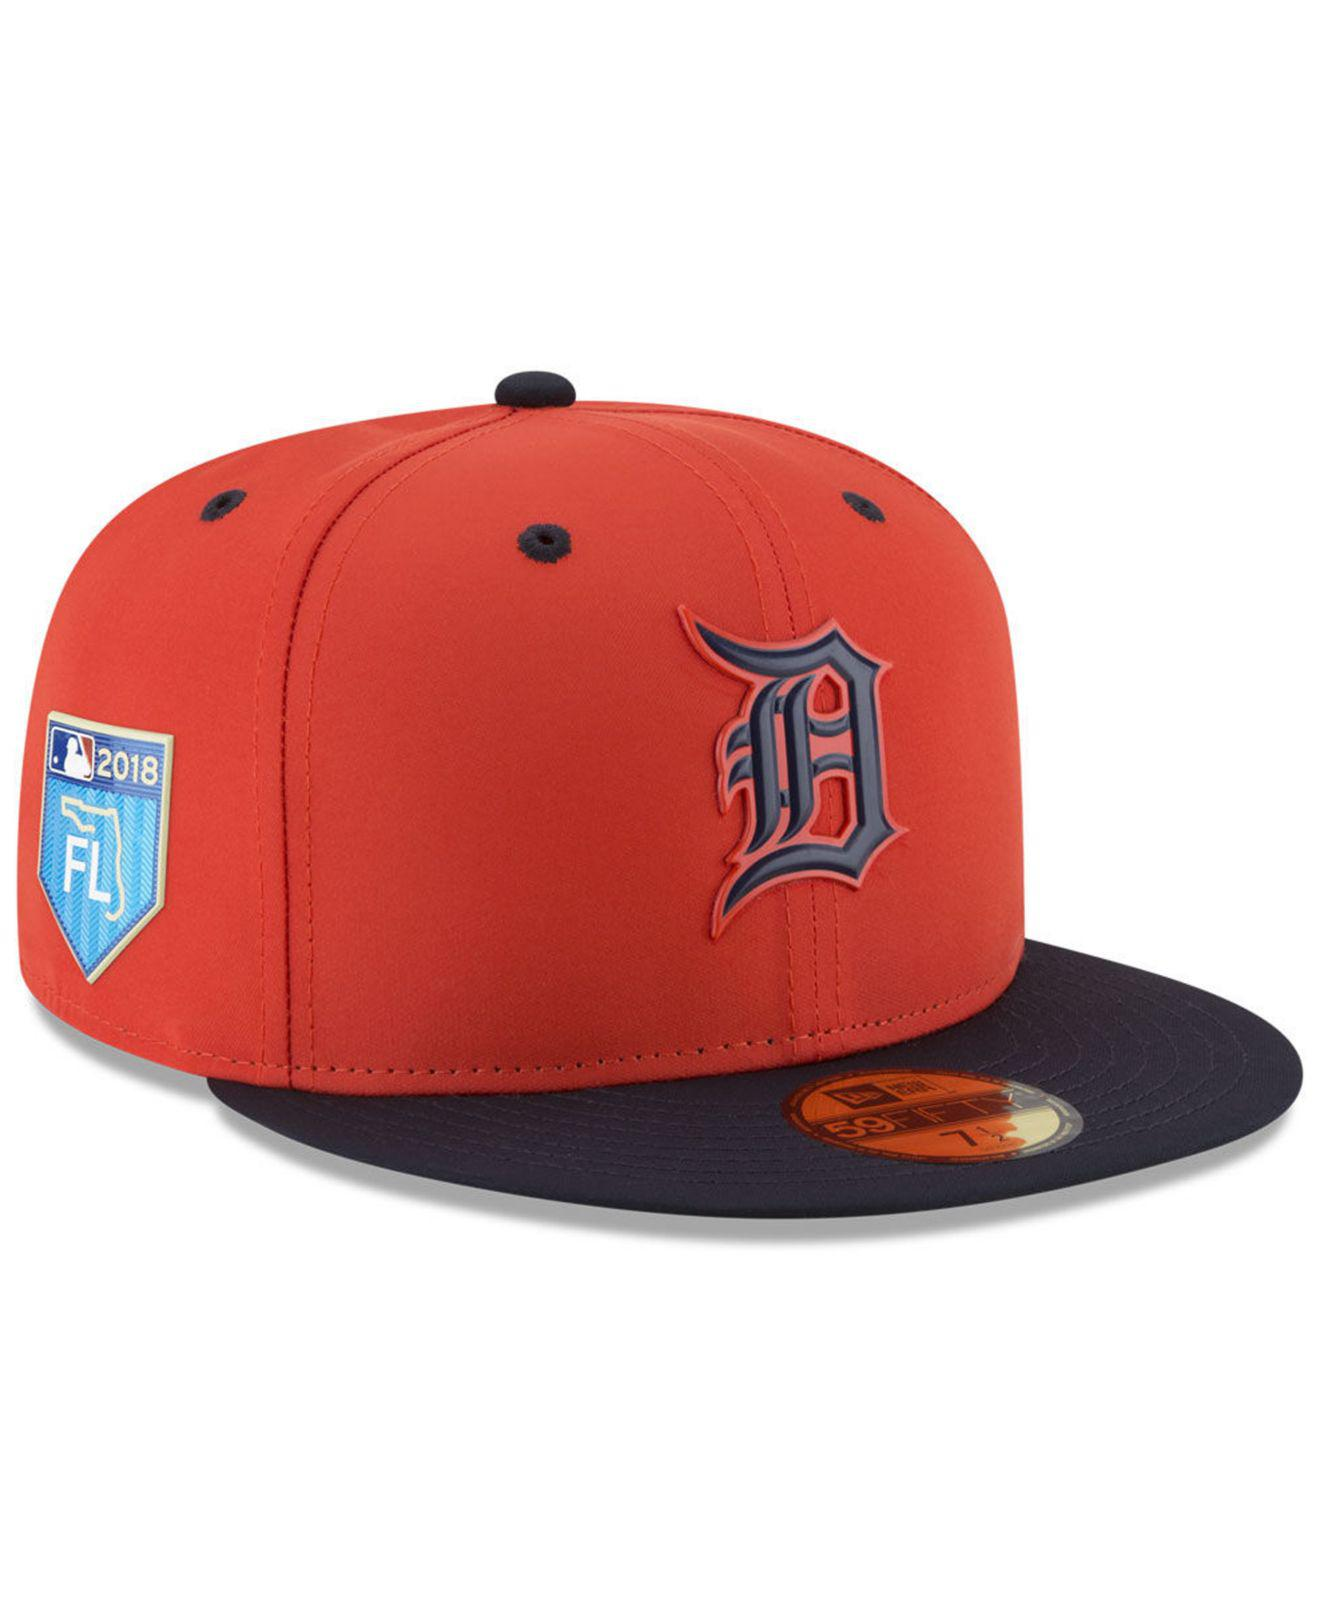 reputable site b8fcf 7702b KTZ Detroit Tigers Spring Training Pro Light 59fifty Fitted Cap in ...